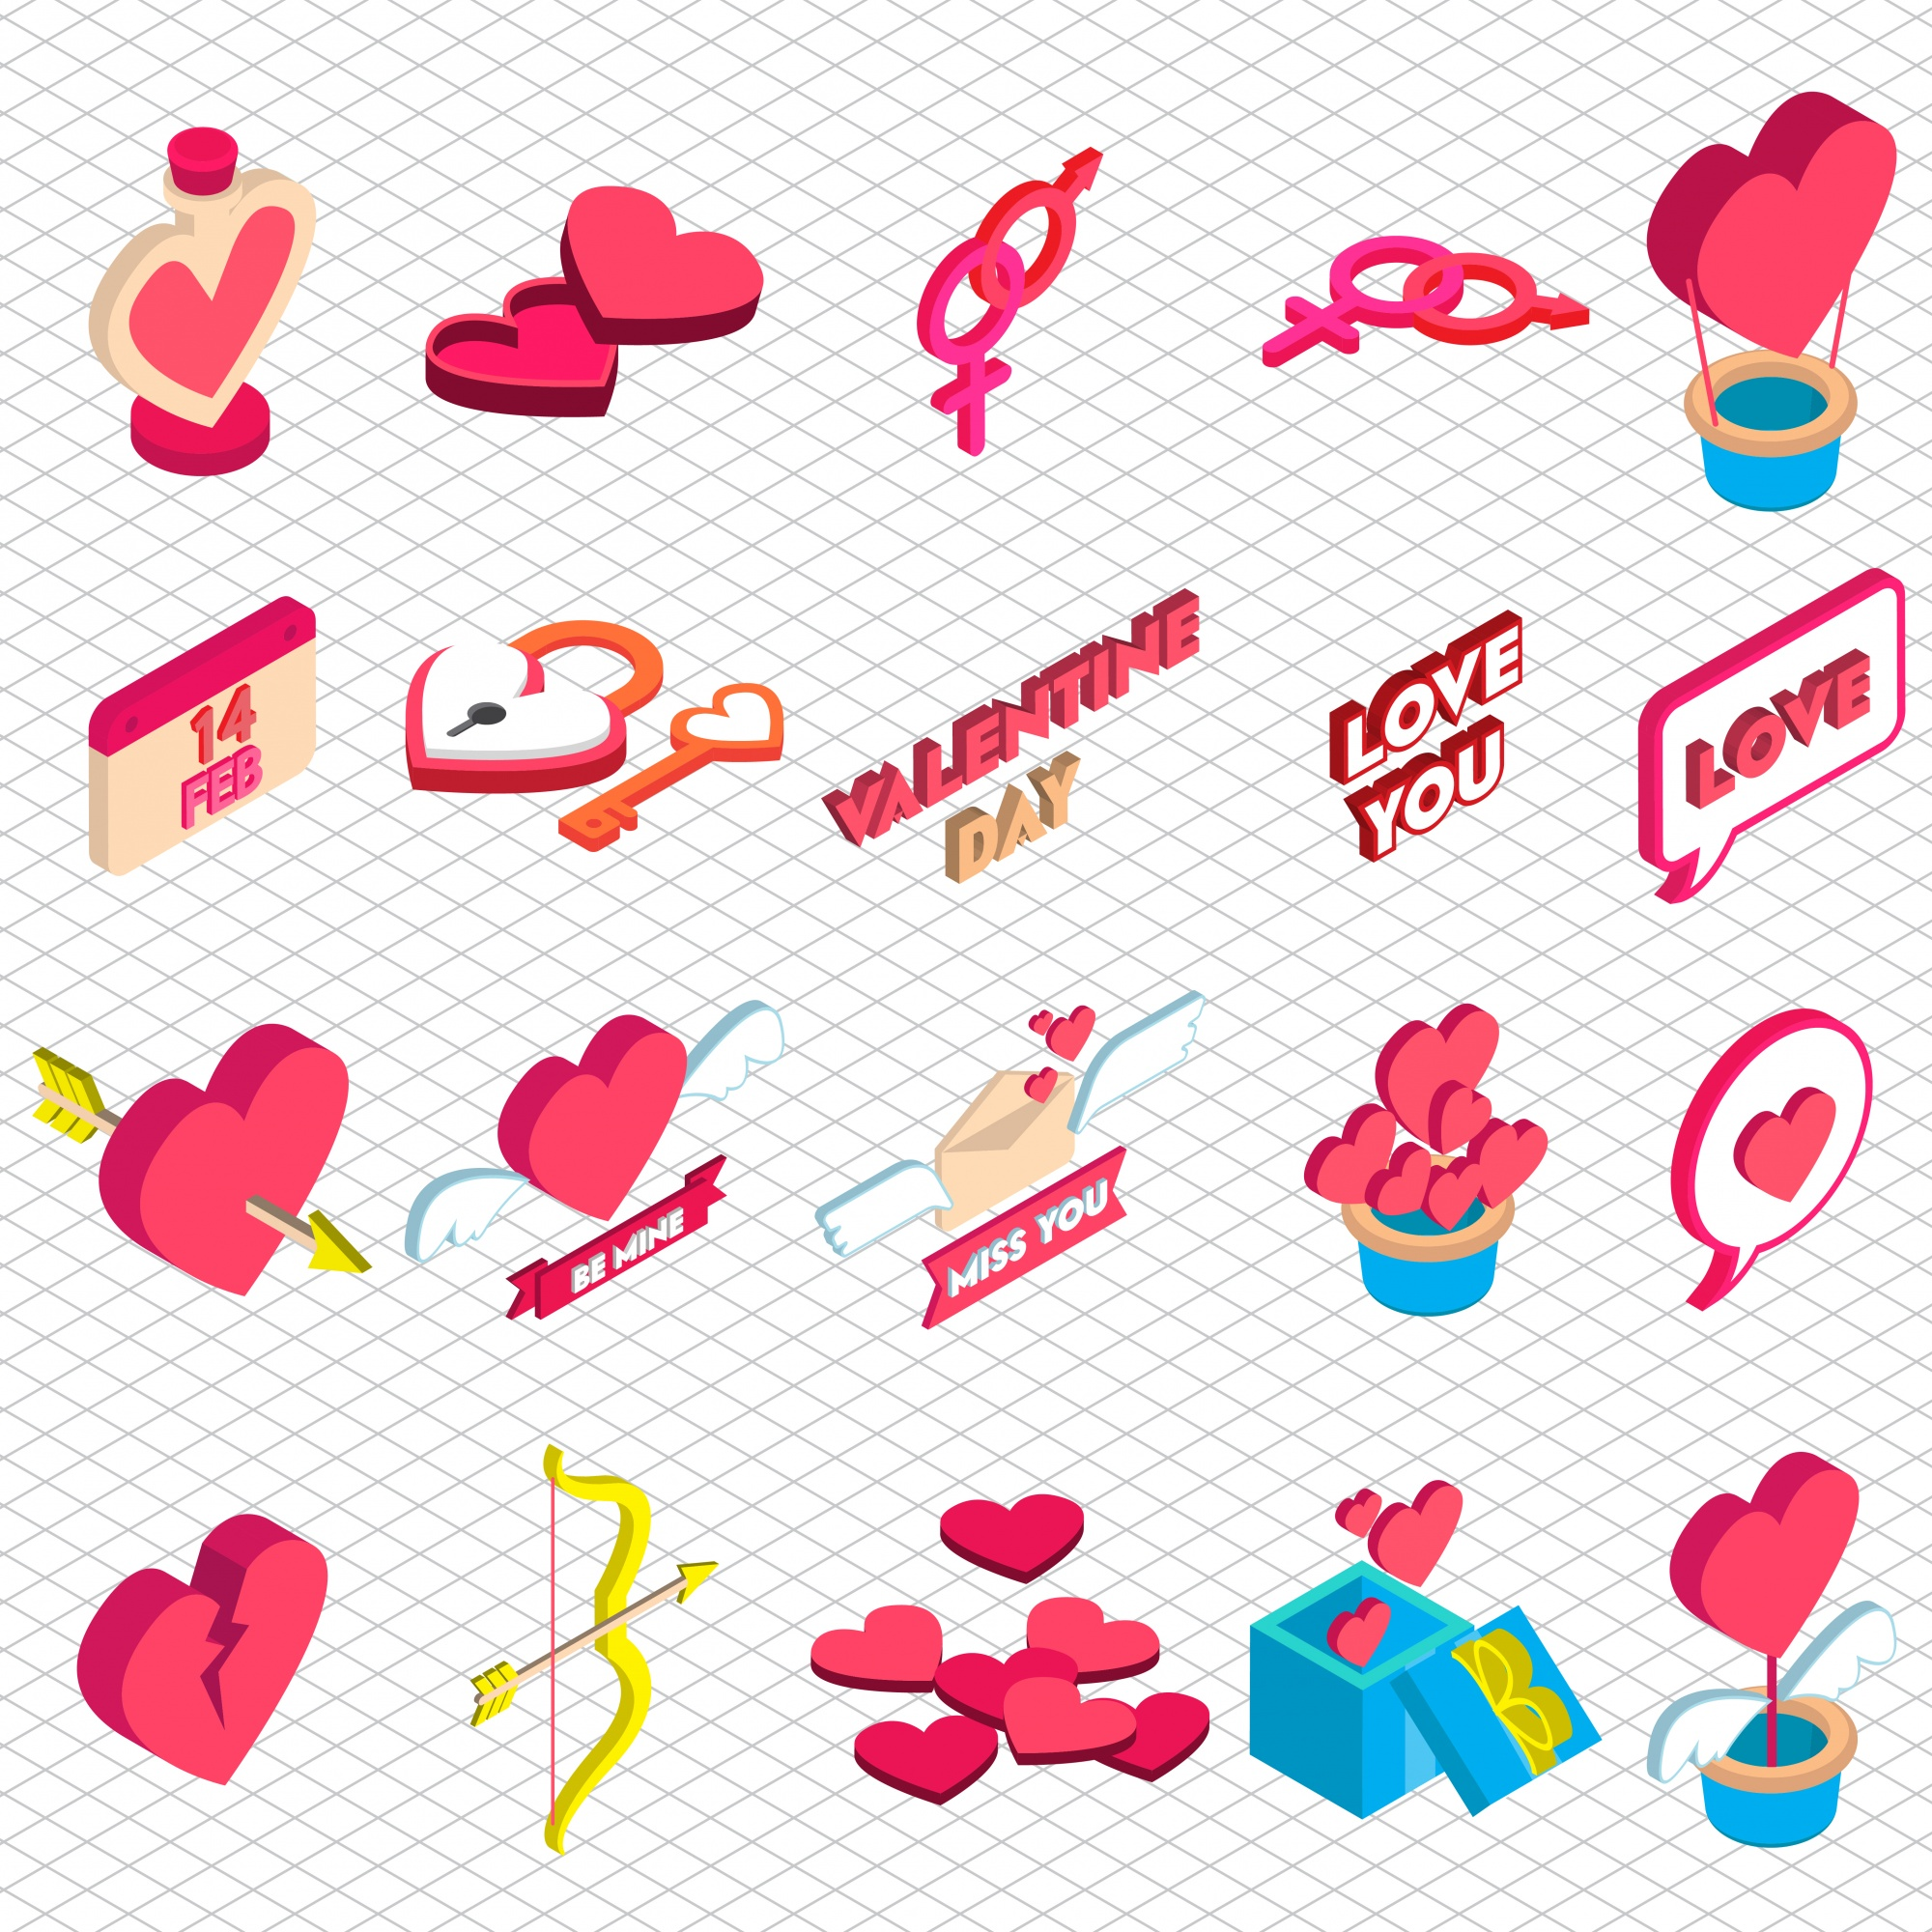 Illustration of love icon graphic in isometric 3d graphic